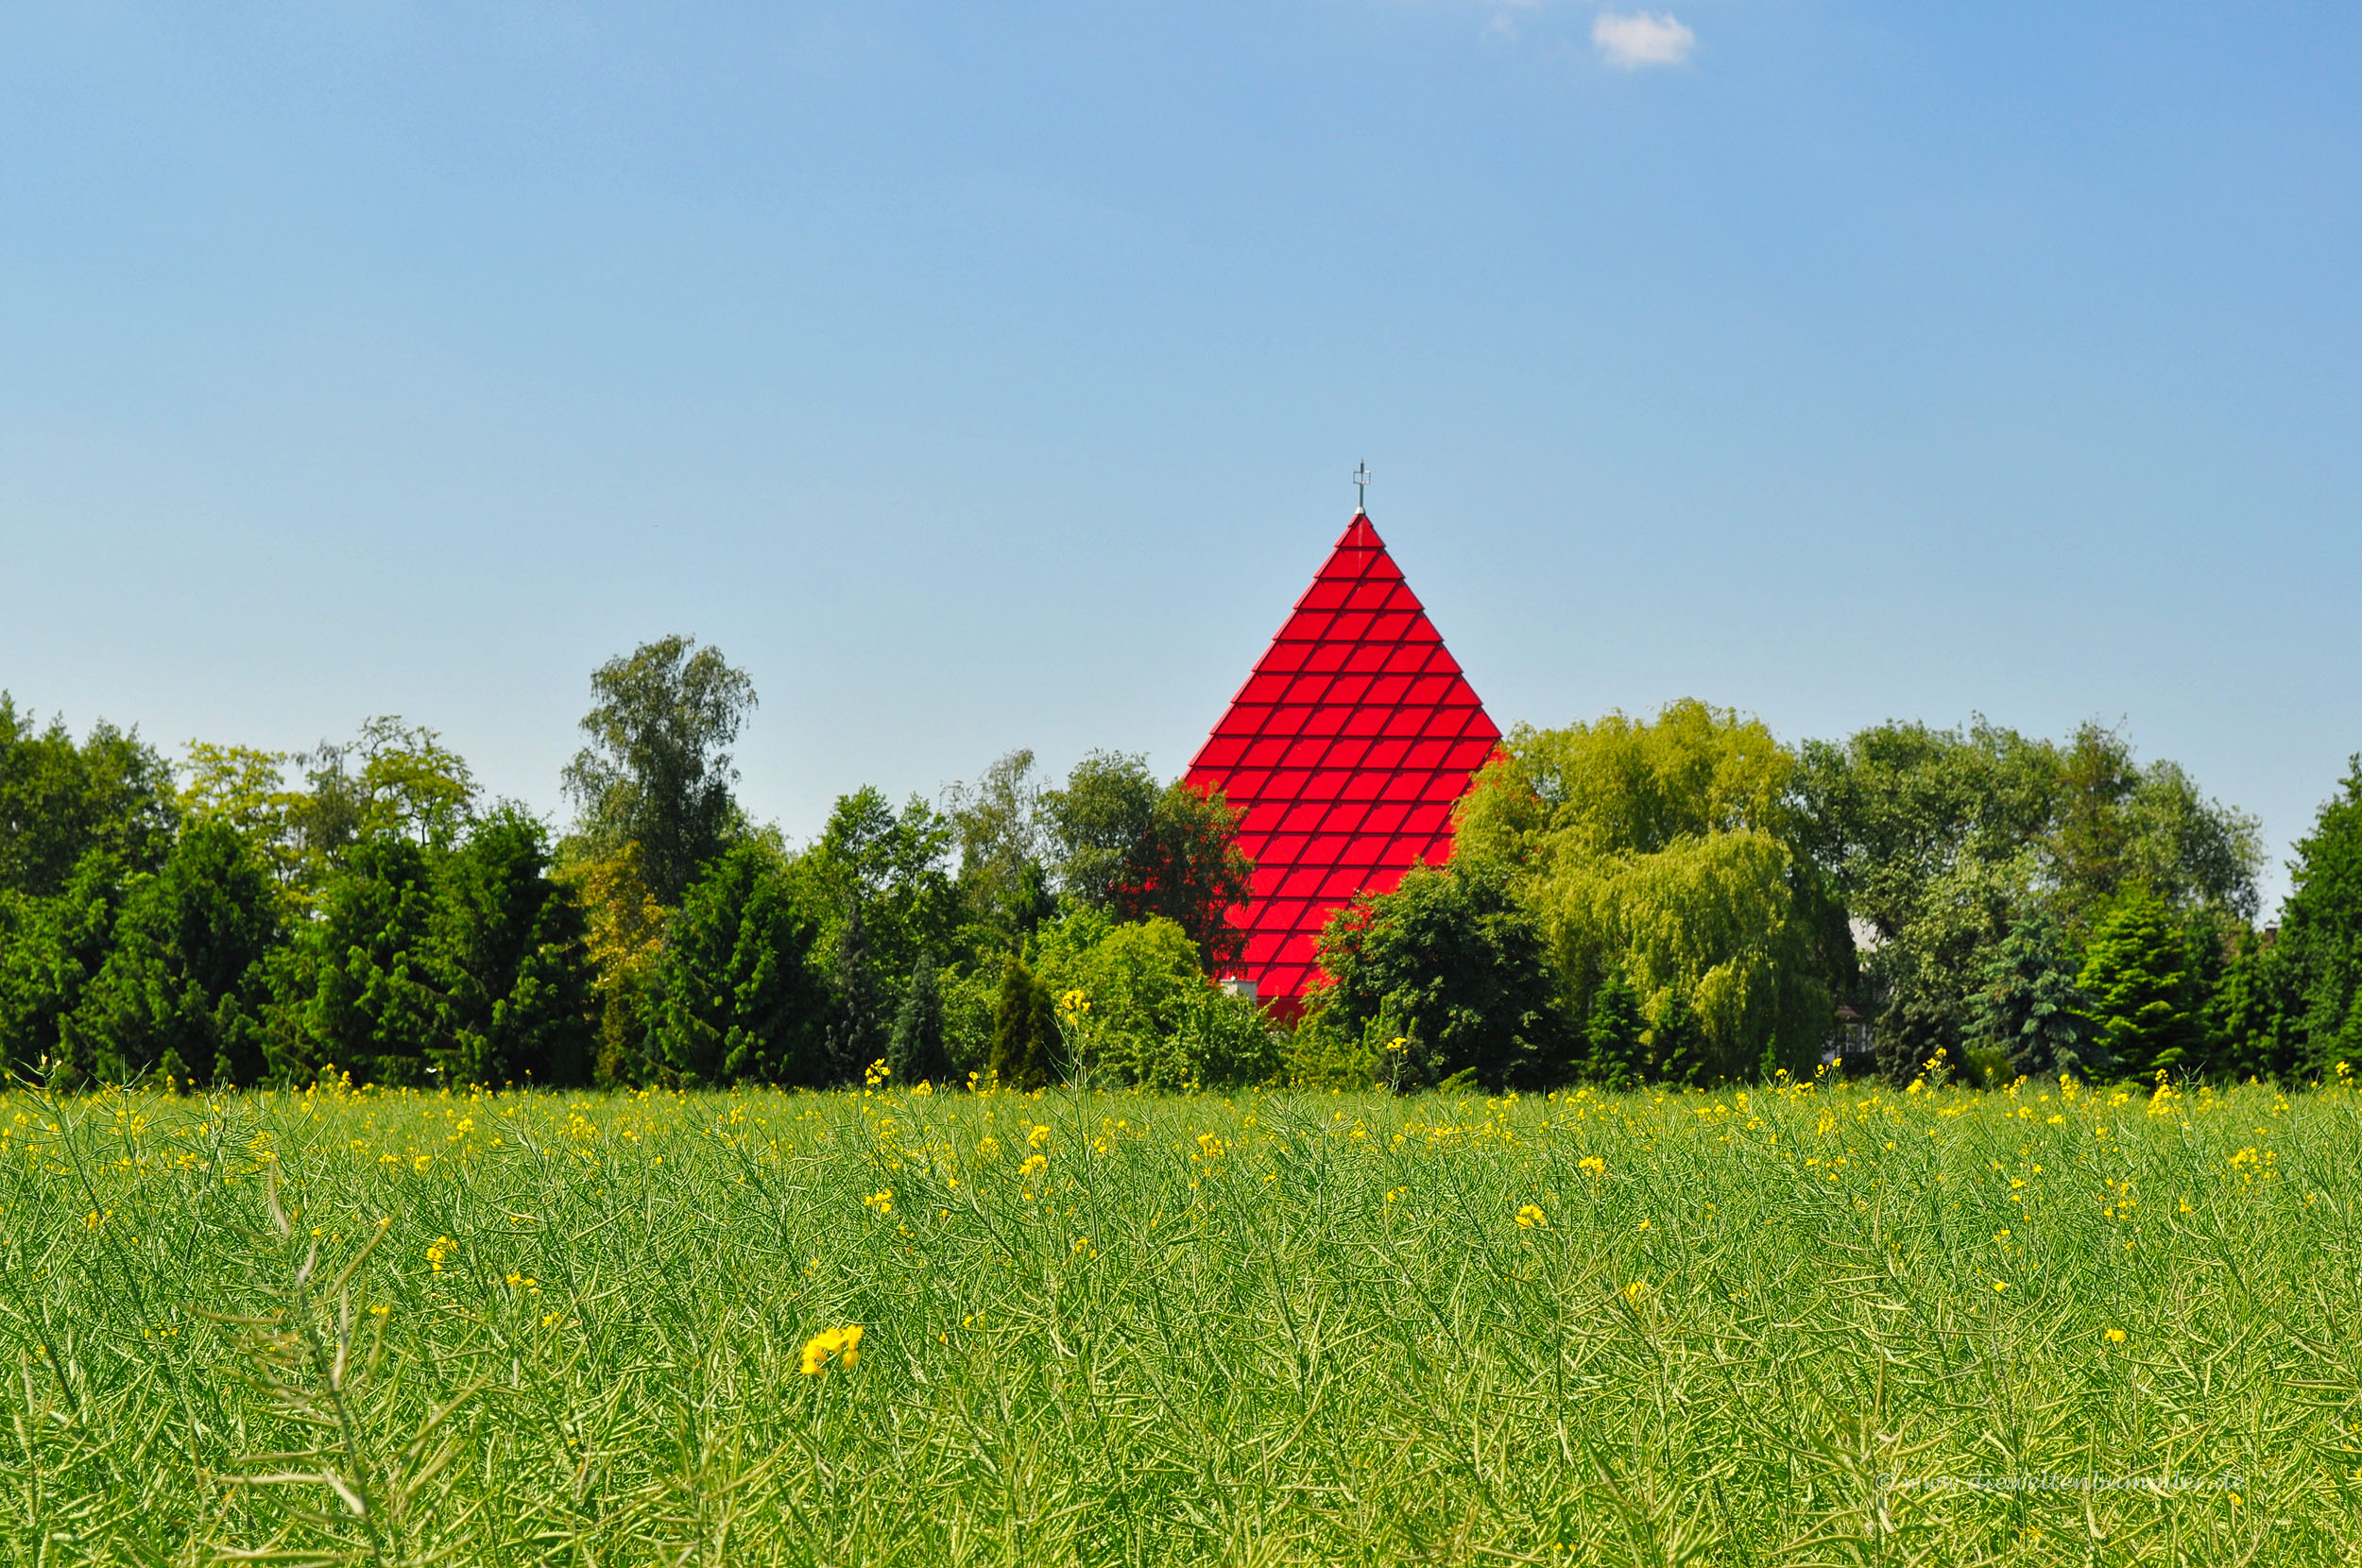 Pyramide in Ratingen-Breitscheid